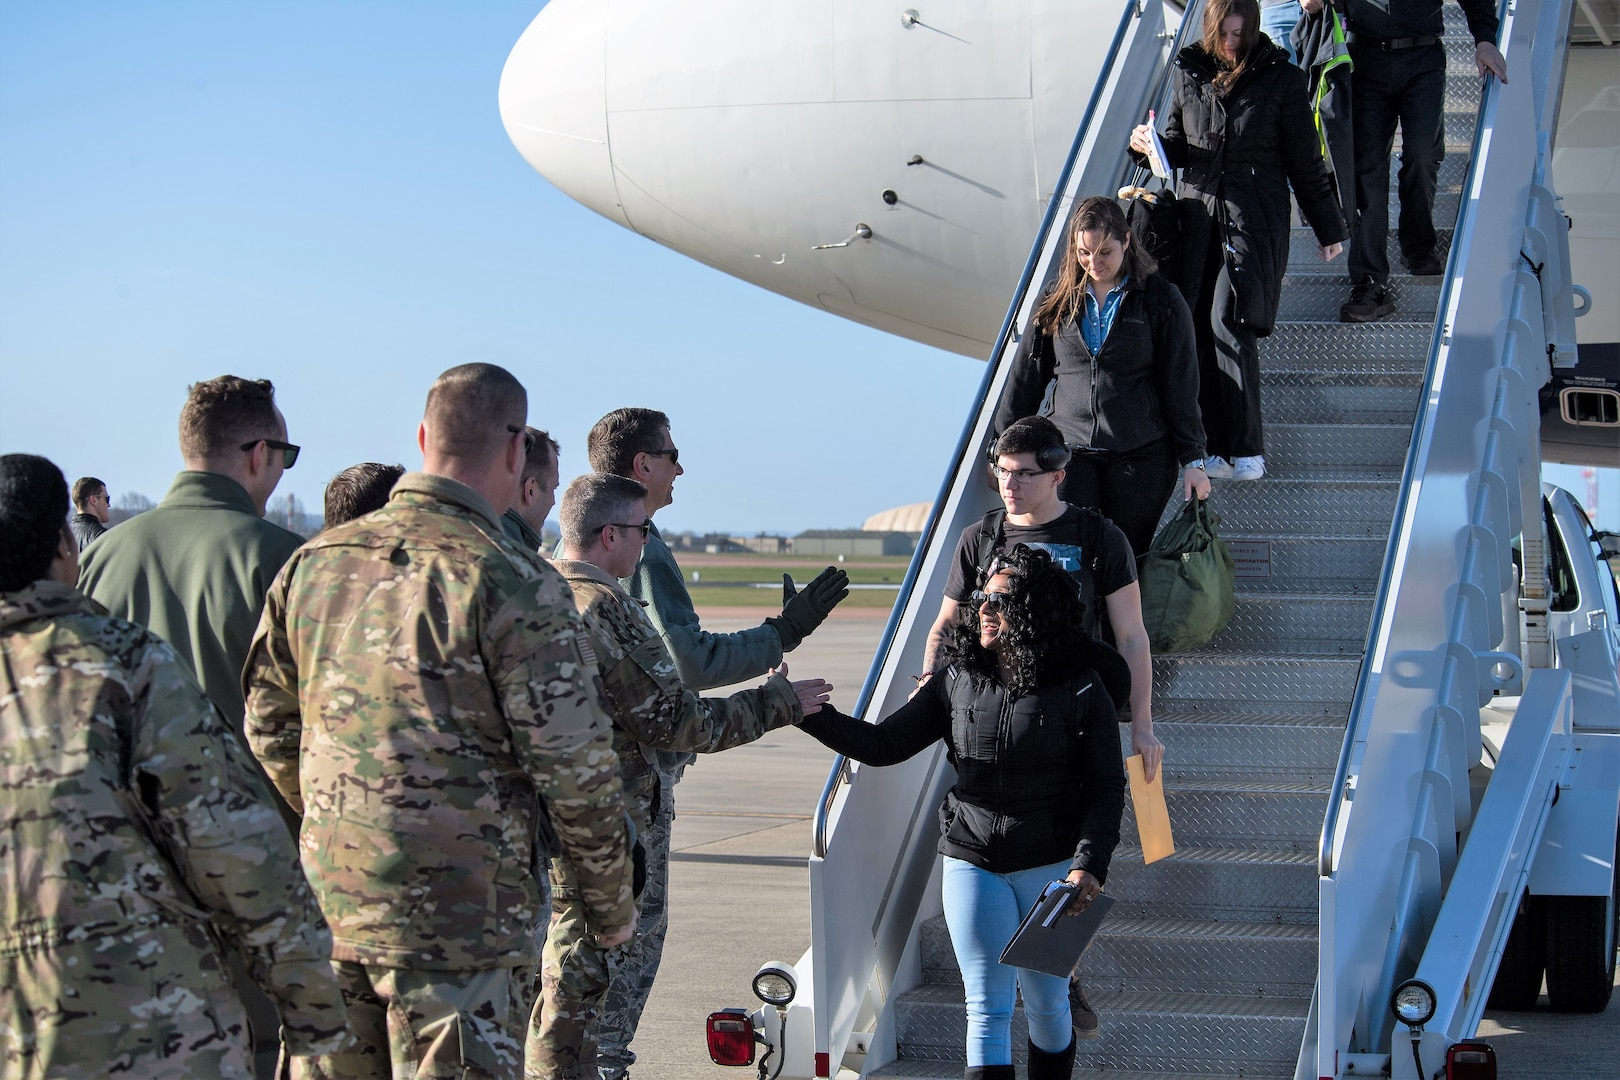 Leadership deployed from Barksdale Air Force Base, La., welcome their deployed Airmen to RAF Fairford, England, March 11, 2019. During their deployment, the Airmen will work around the clock to support U.S. Strategic Command's Bomber Task Force (BTF) in Europe.